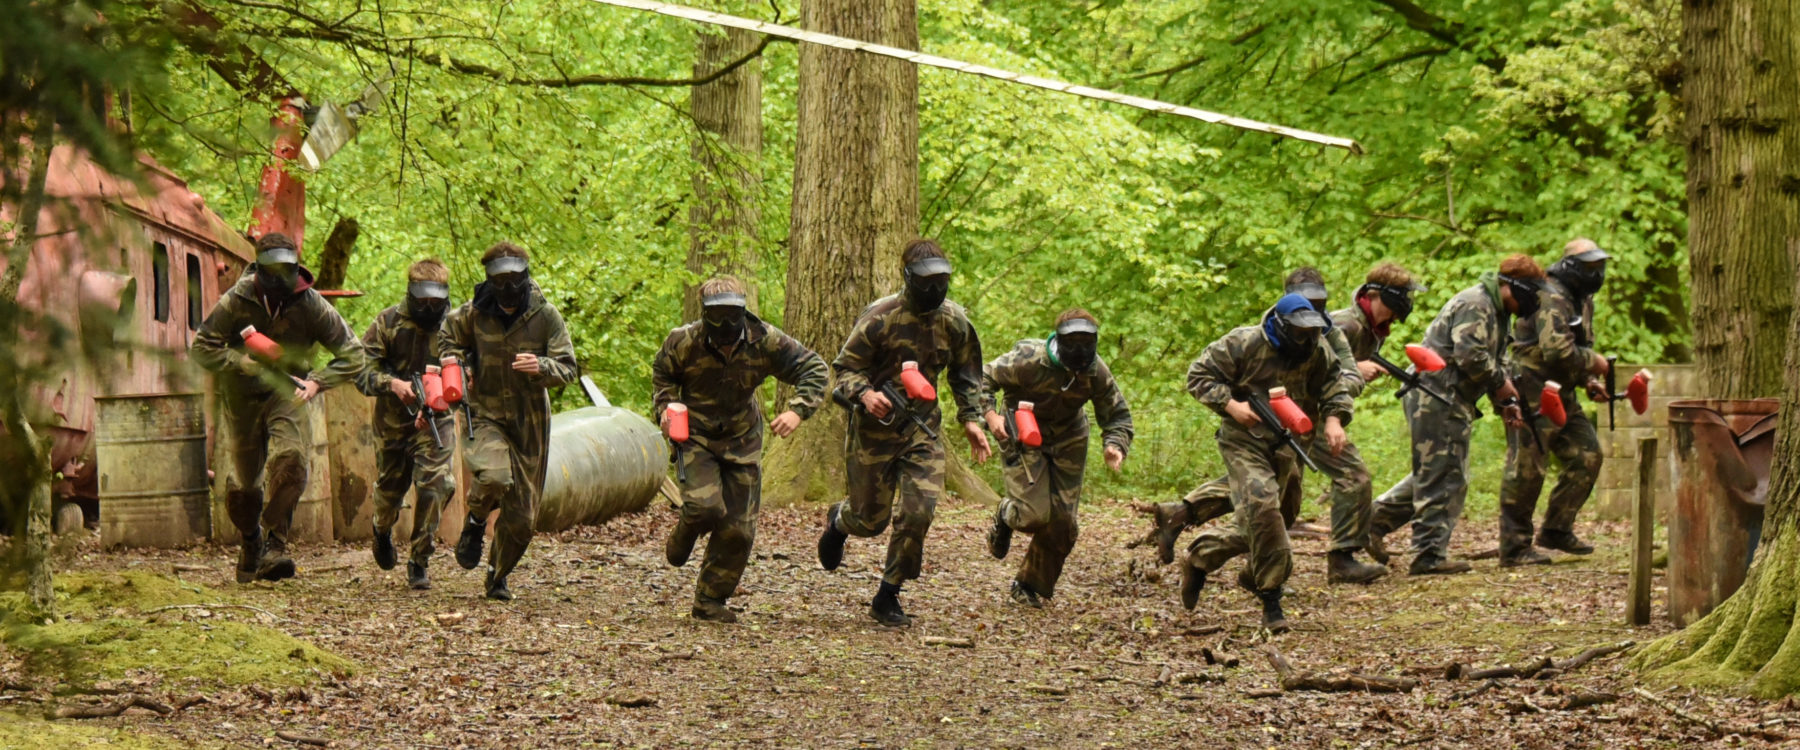 Paintballing at Oaker Wood